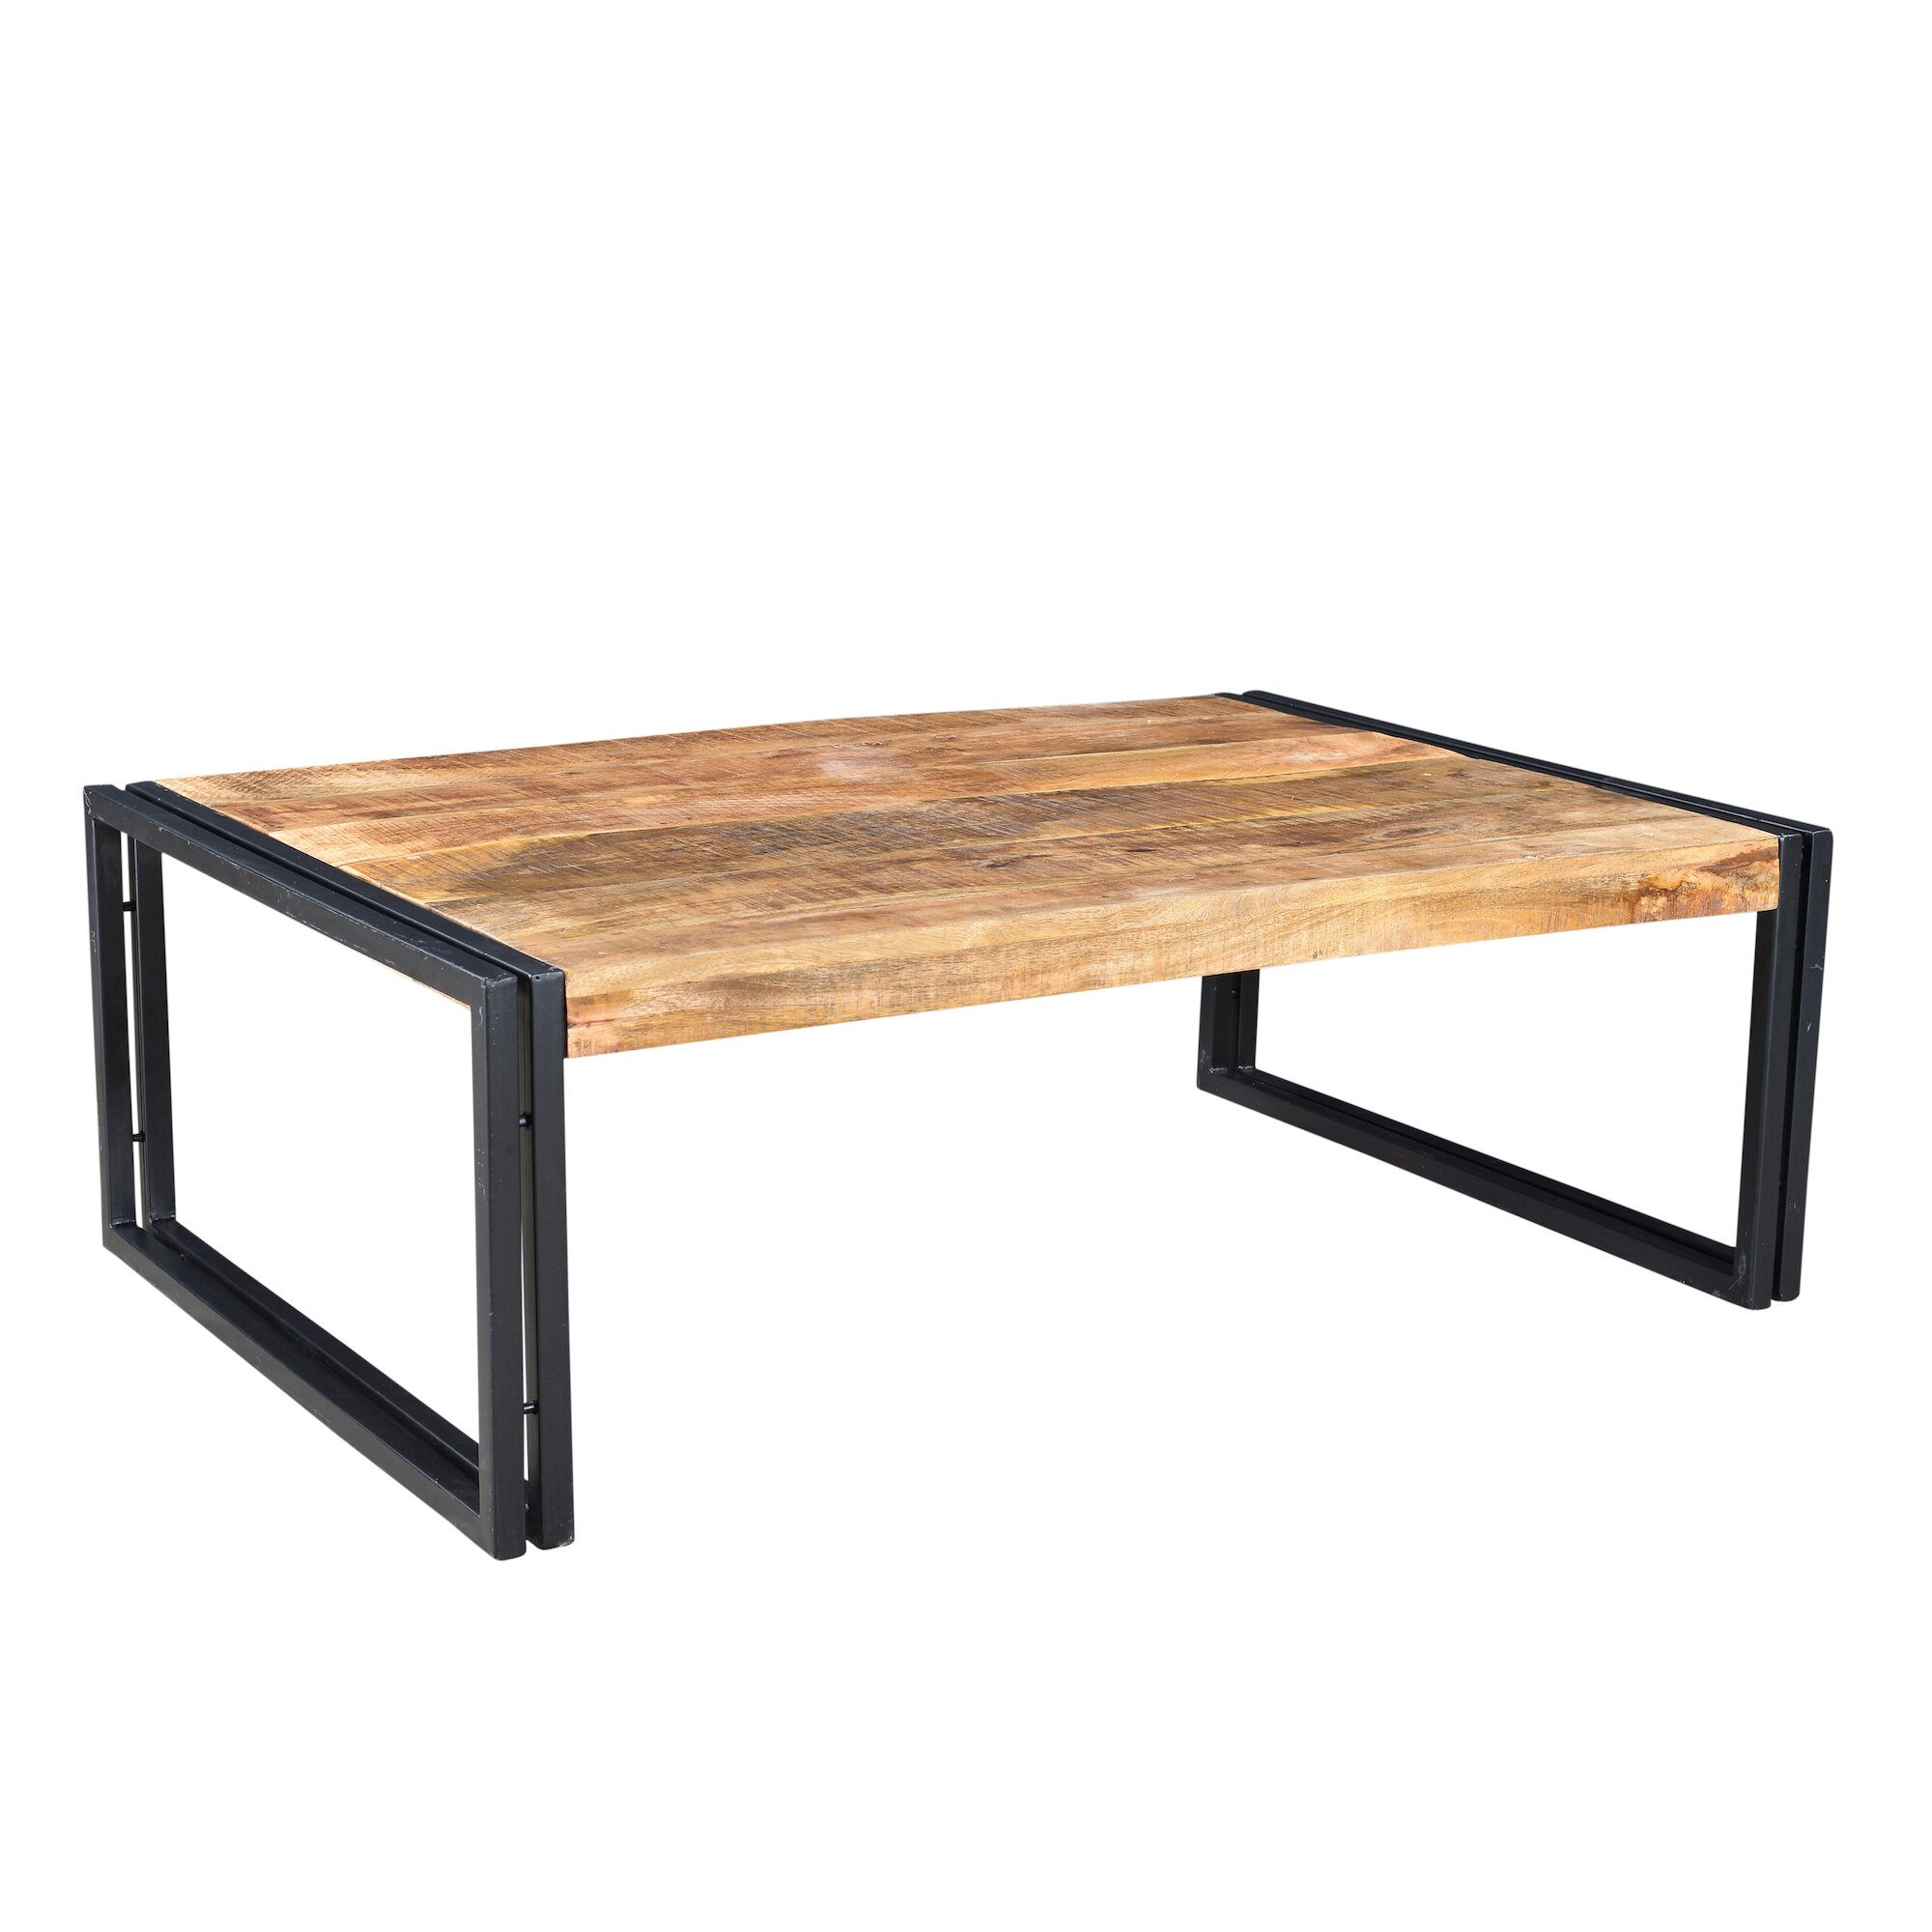 Timbergirl Coffee Table & Reviews